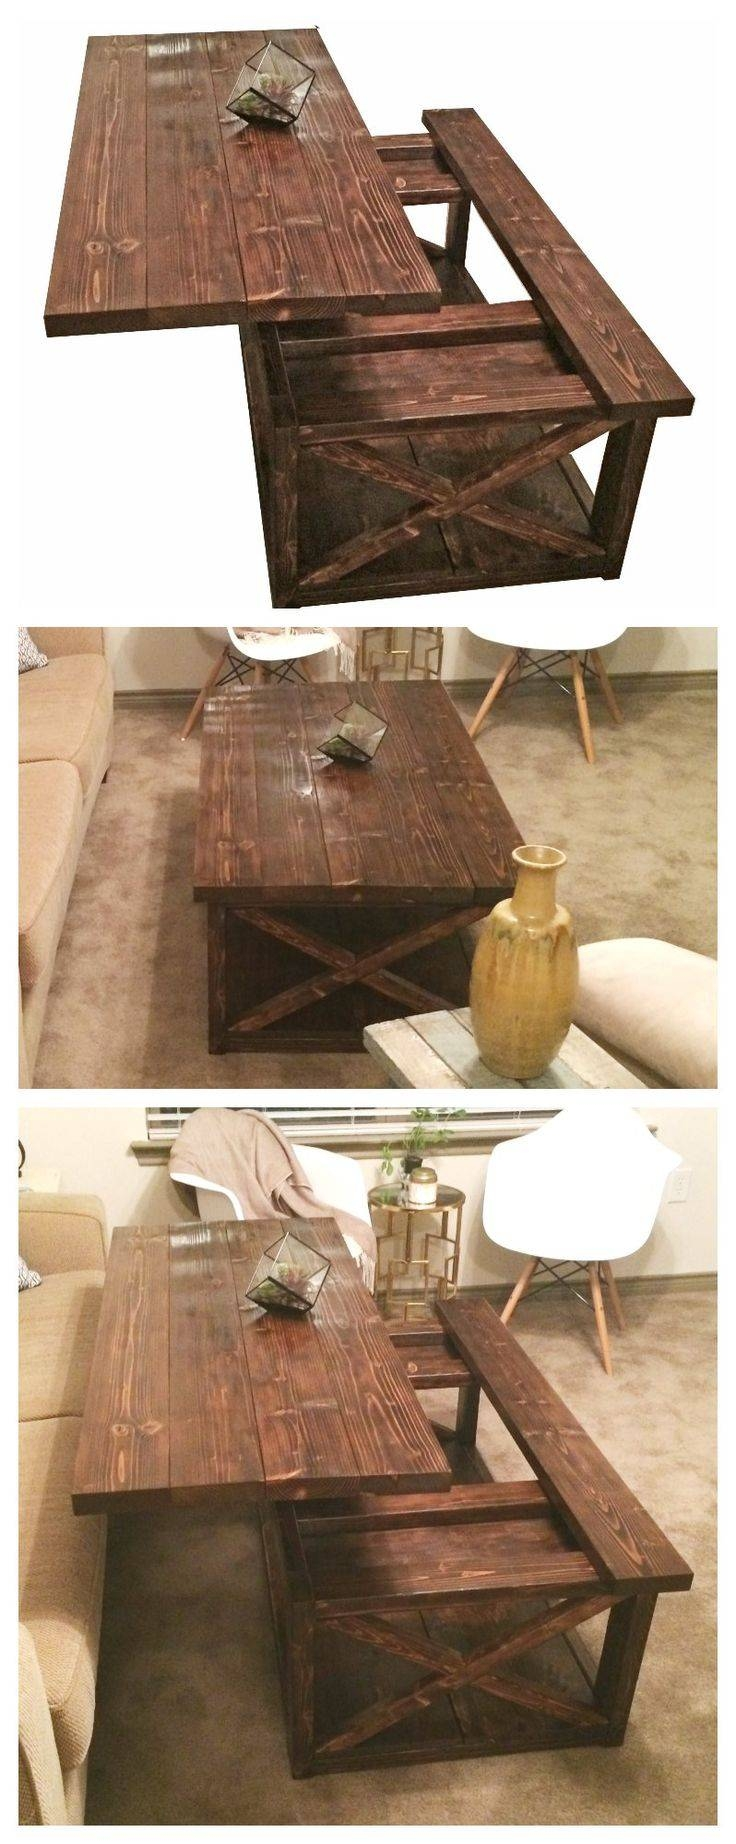 Best 25+ Coffee Tables Ideas Only On Pinterest | Diy Coffee Table intended for Coffee Tables With Clock Top (Image 4 of 30)